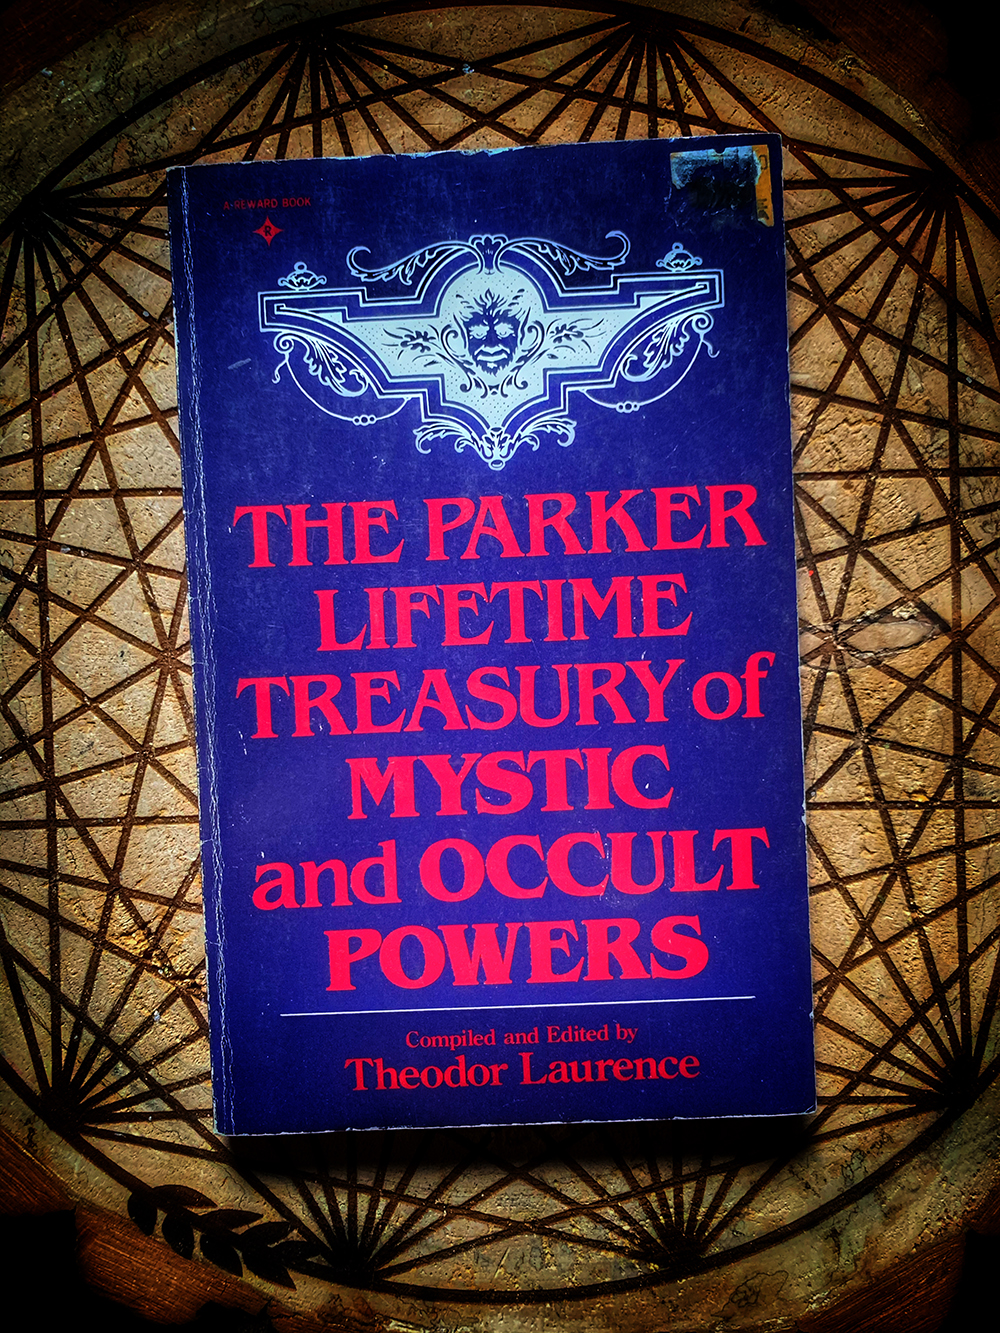 The Parker Lifetime Treasury of Mystic and Occult Powers